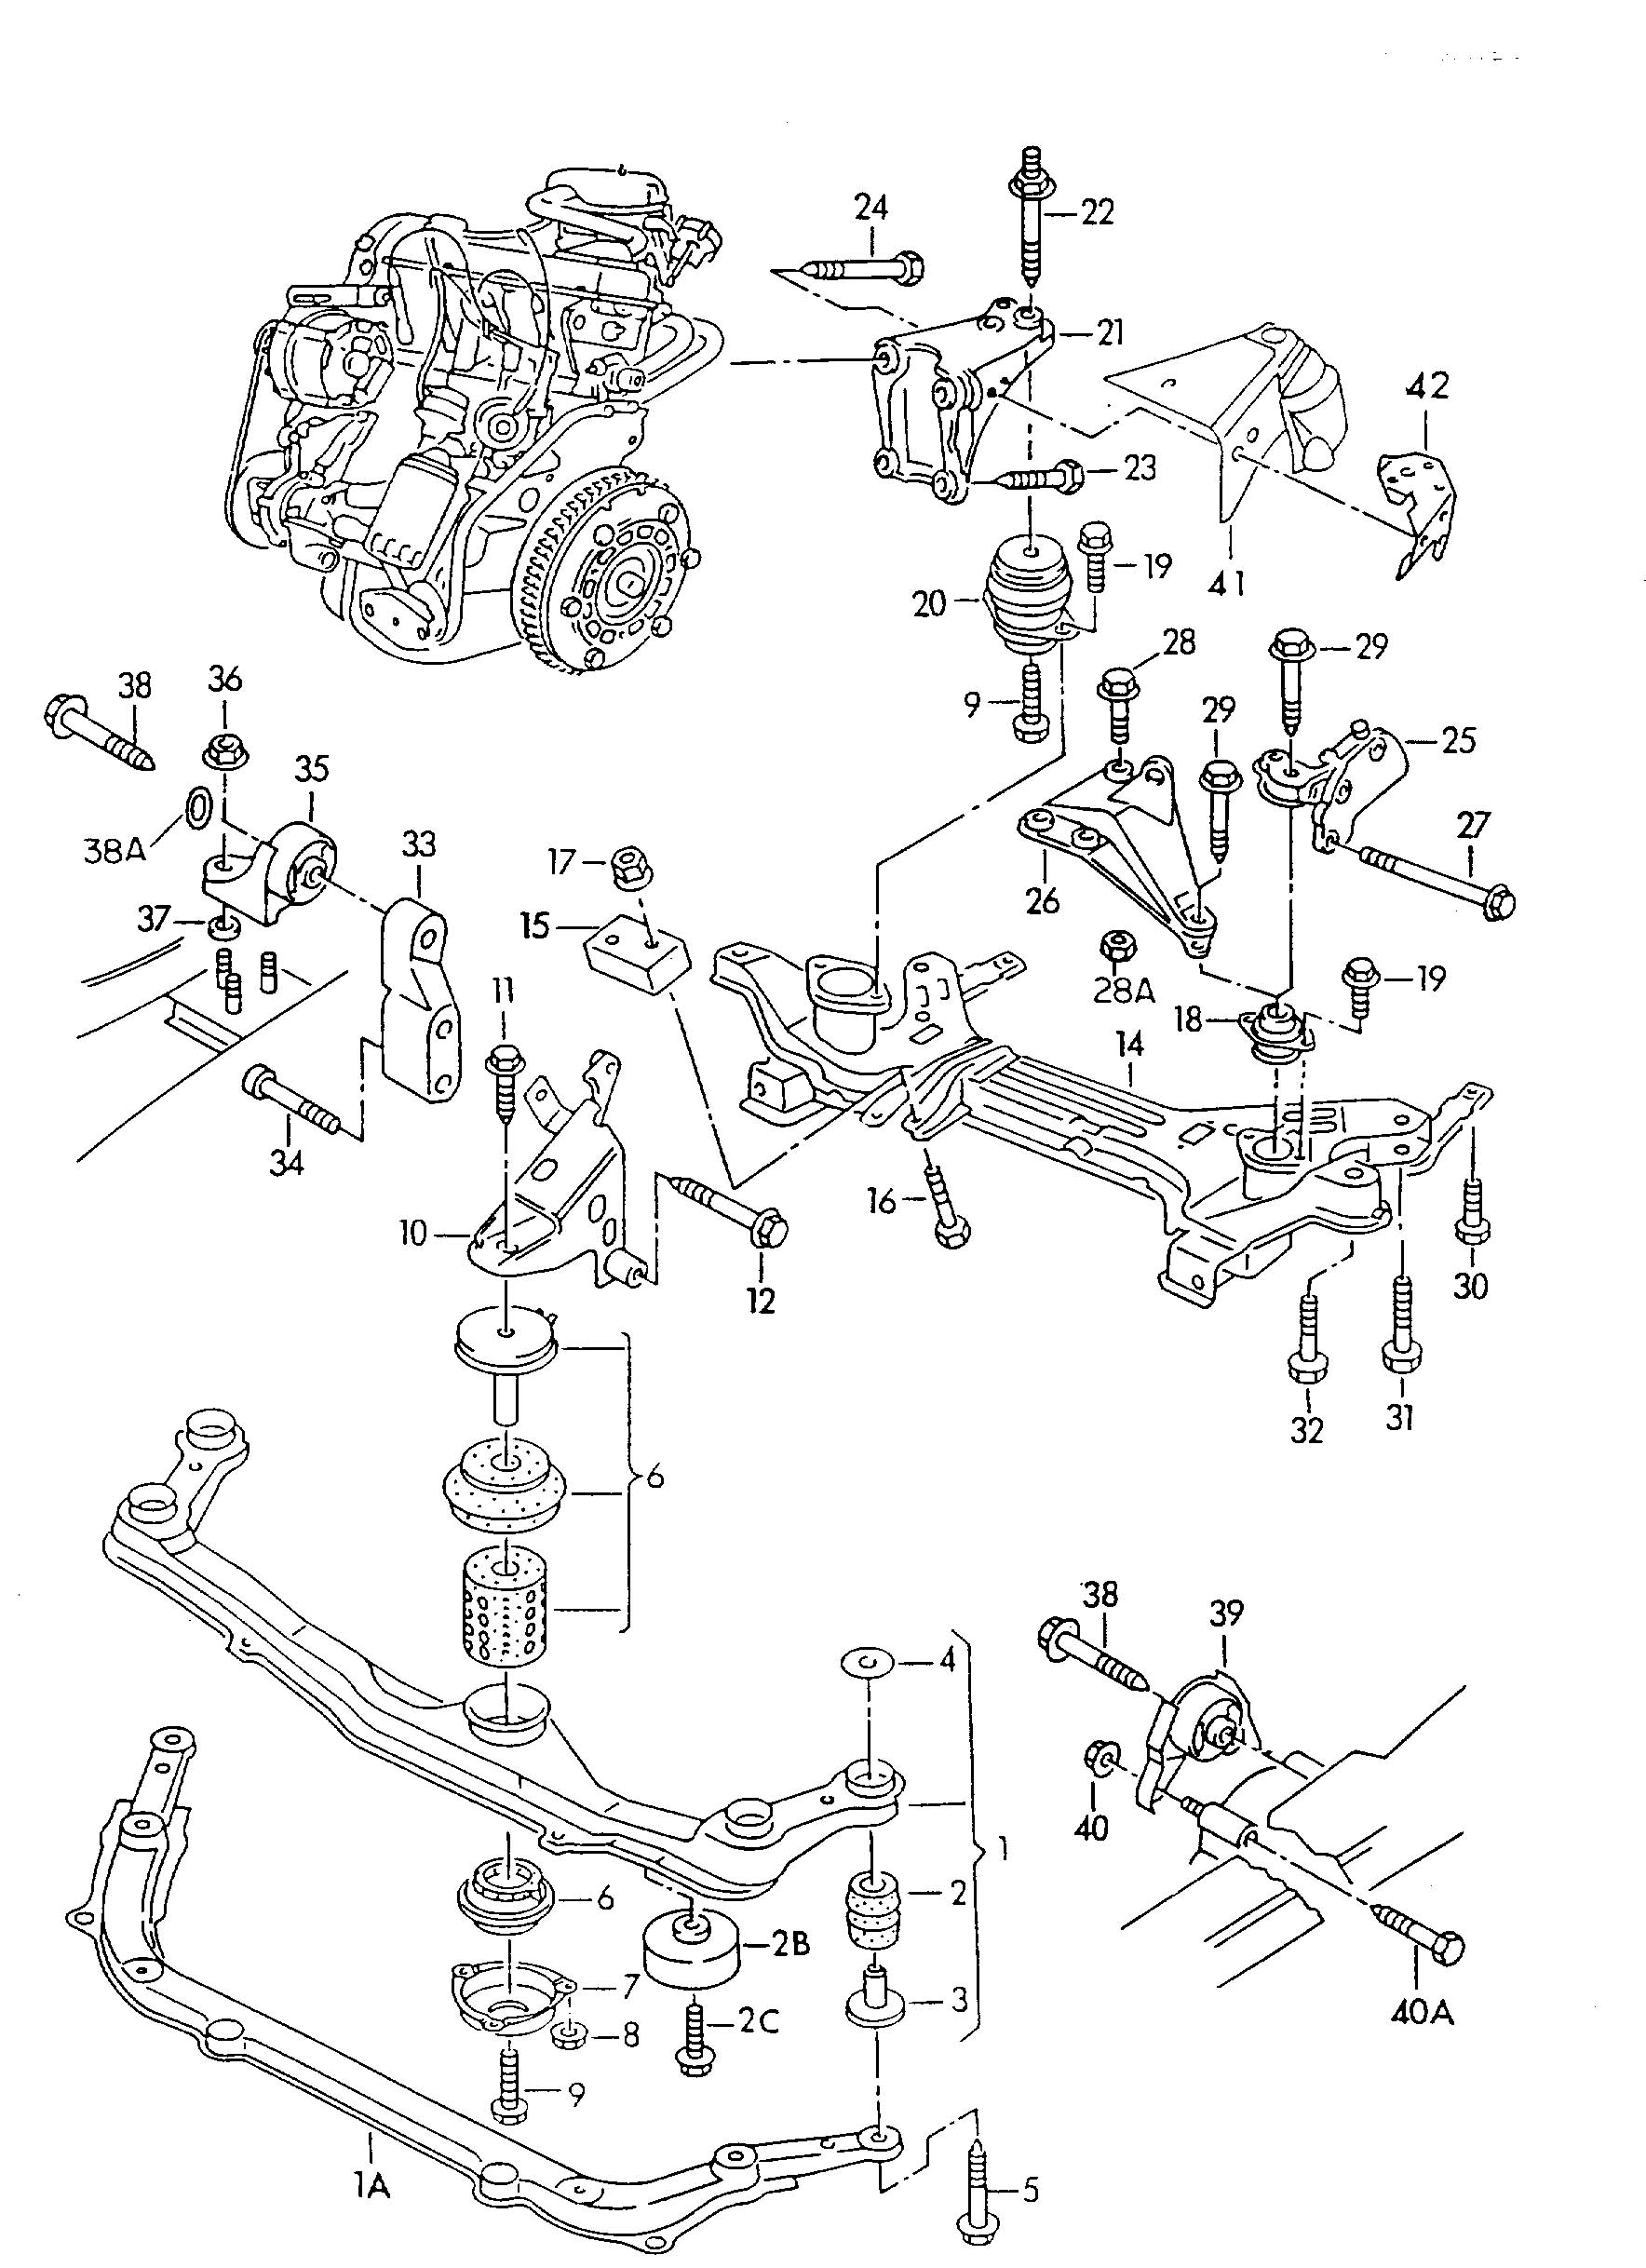 98 Vw Jetta Engine Diagram Wiring Diagrams 2011 Volkswagen 96 Get Free Image About 1998